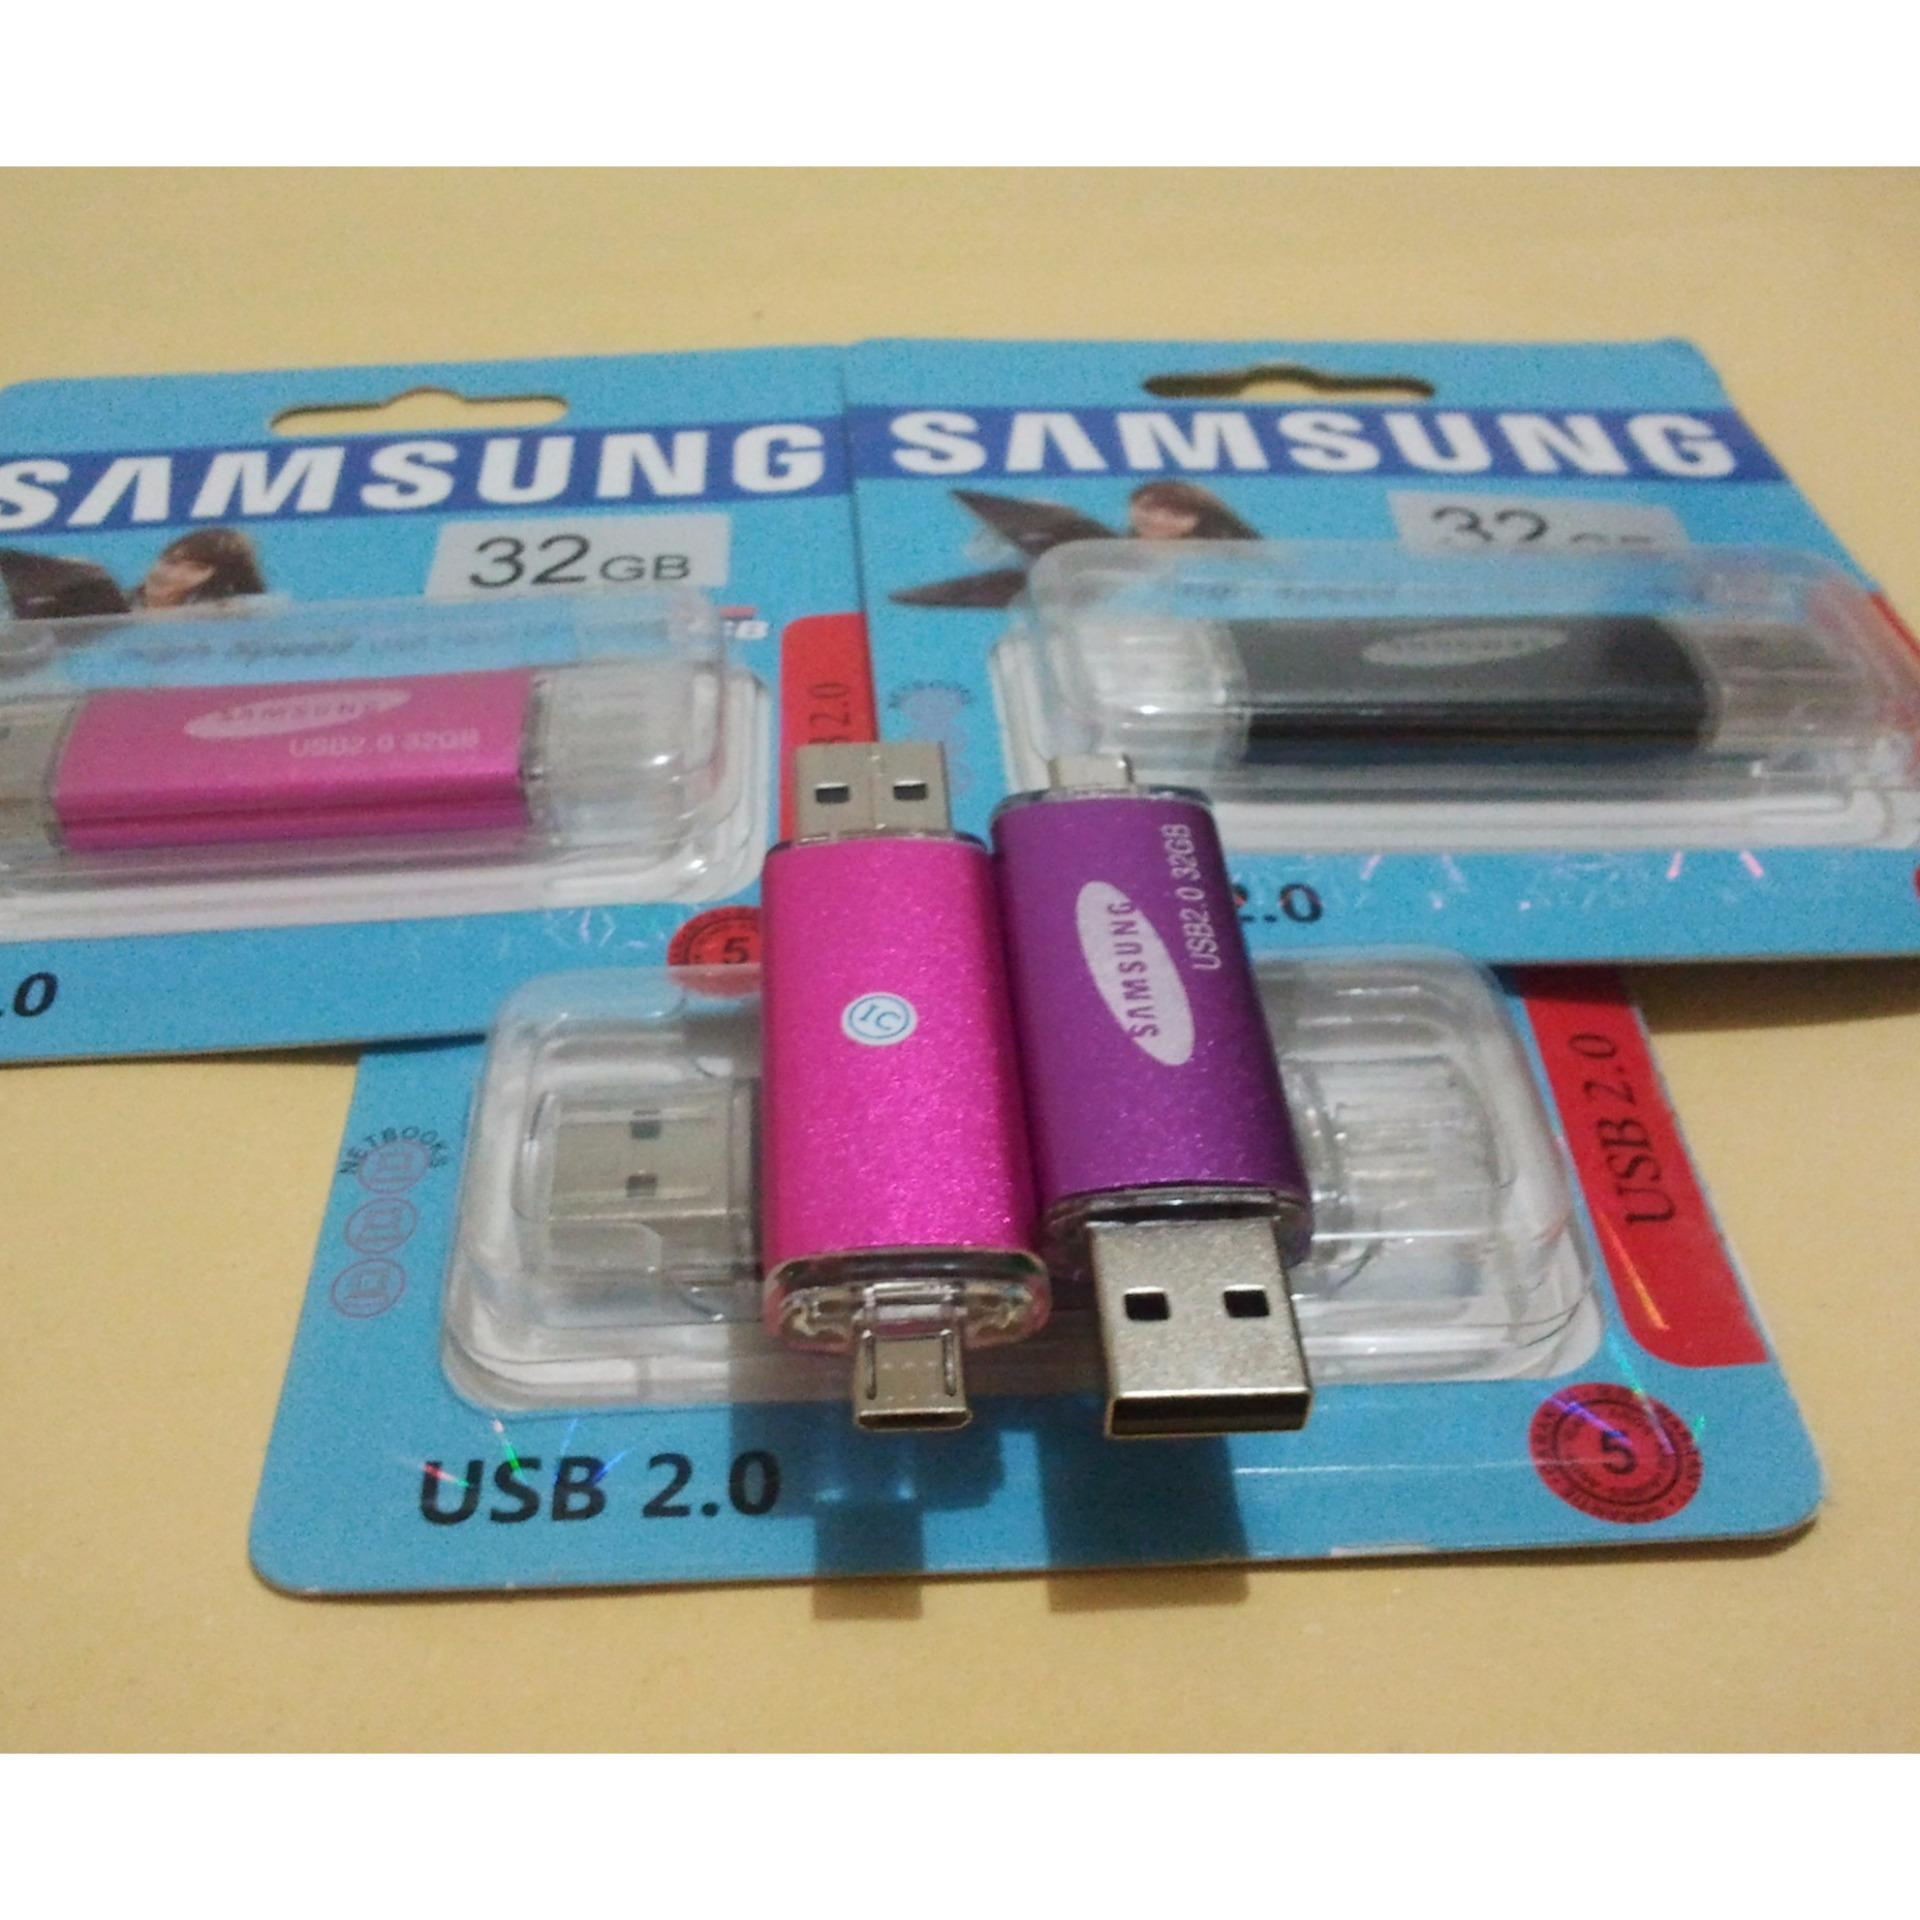 Kingston Flashdisk Otg Dtduo32gb Data Traveler Micro Duo 32gb Coklat Vgen Flasdisk Samsung